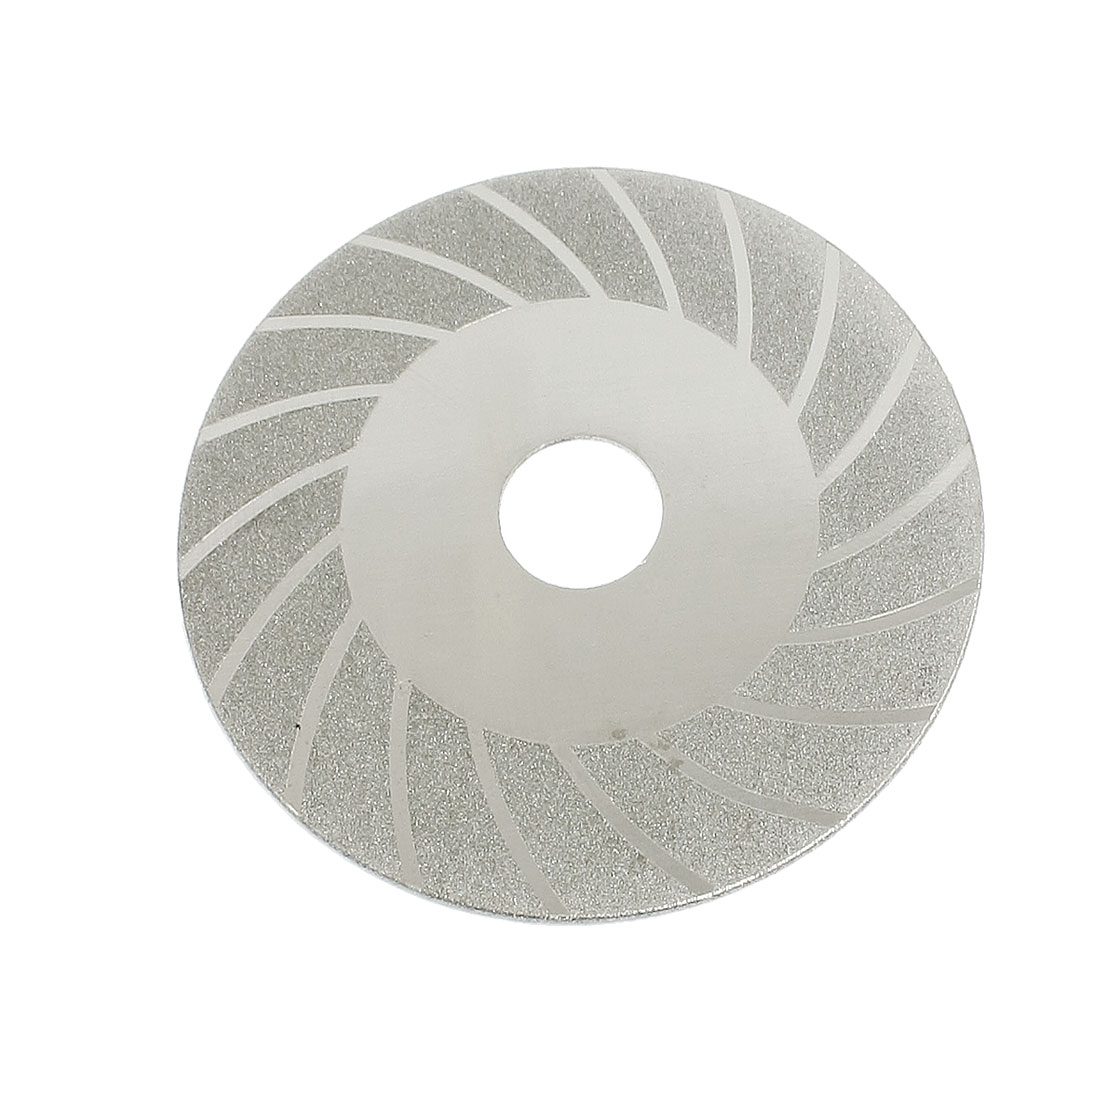 100mm x 20mm x 1mm Double Side Cutting Disc Diamond Saw Cutter 150 Grit